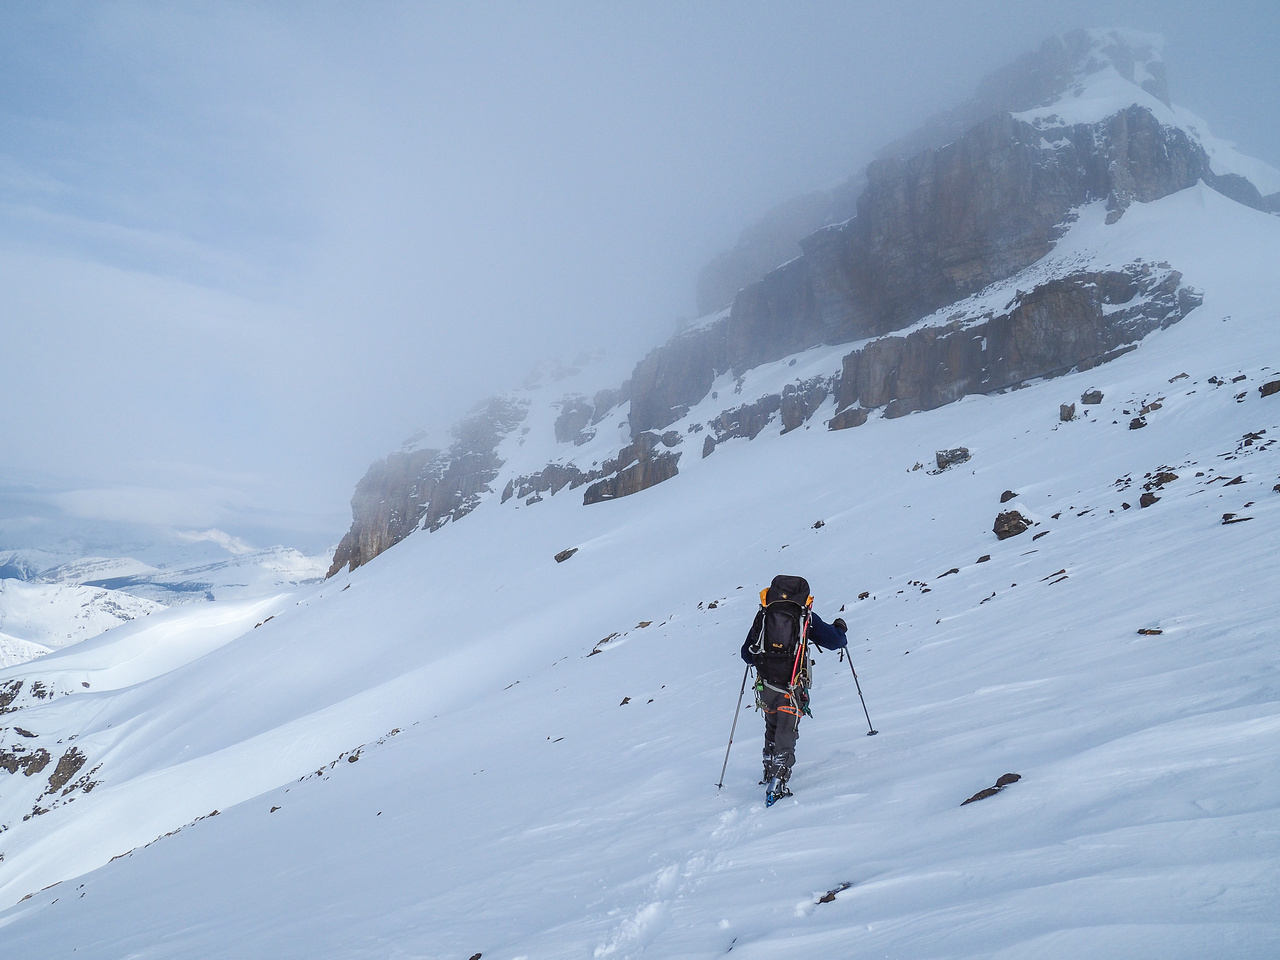 We begin our traverse to the snow gully on fairly benign slopes.